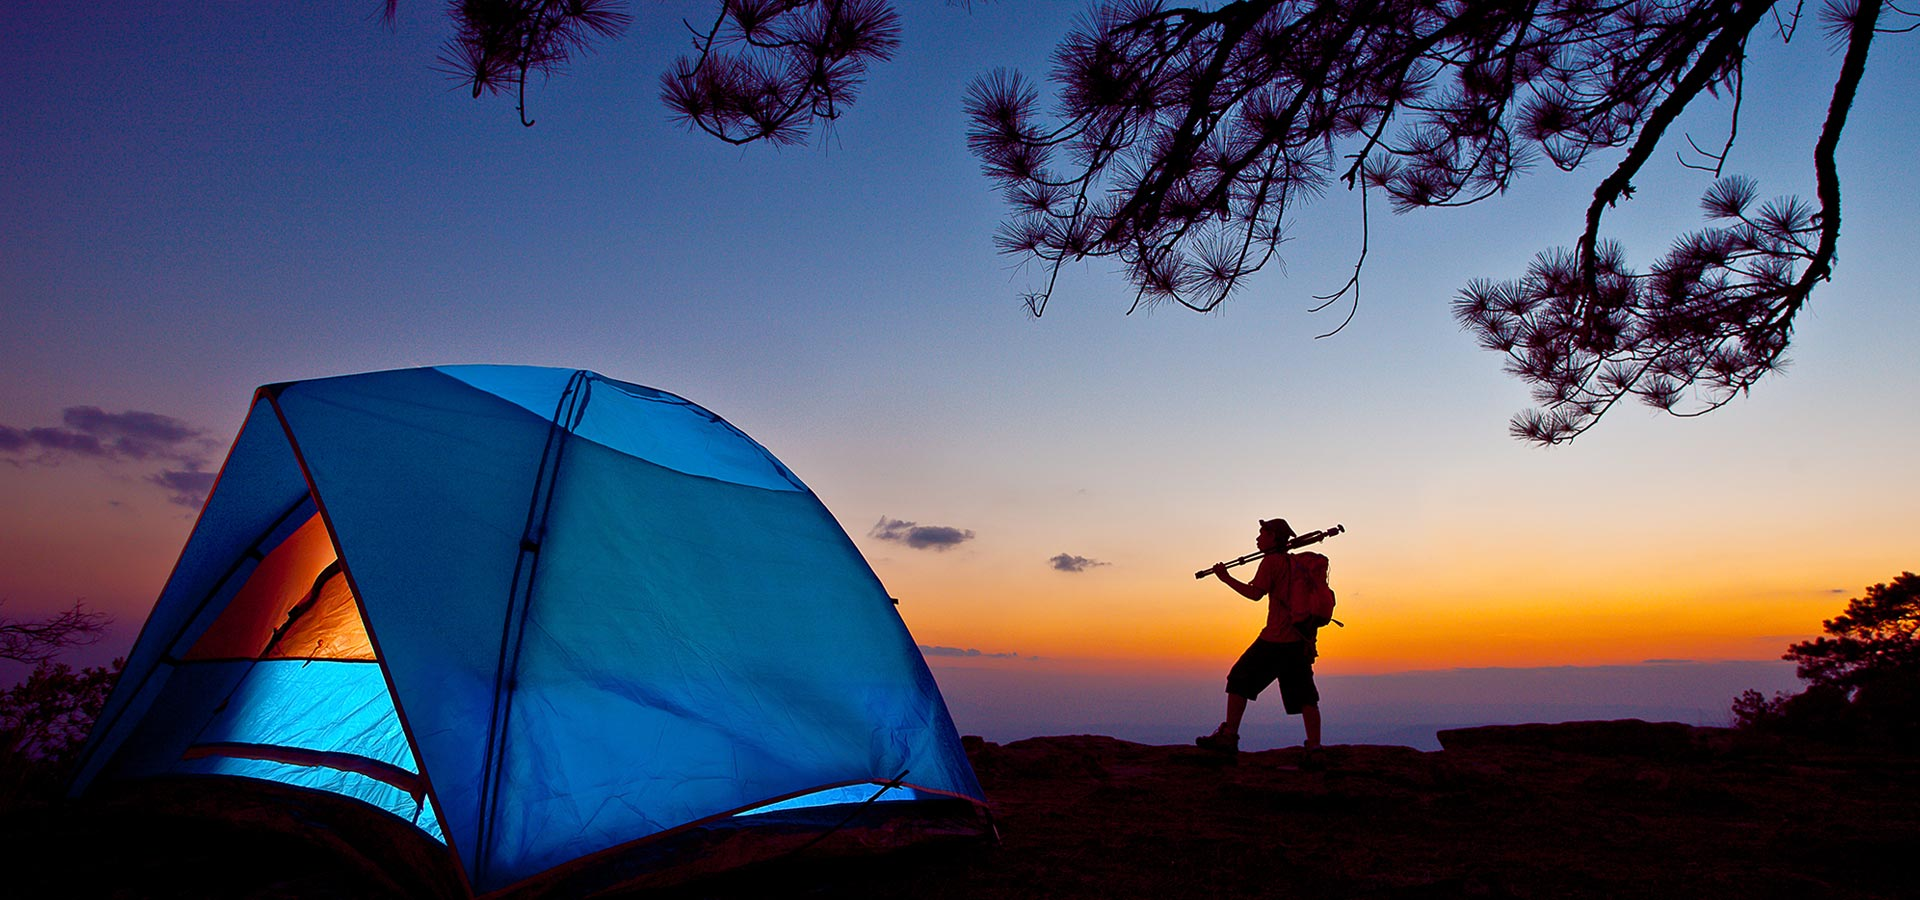 10 Best Campgrounds in Miami